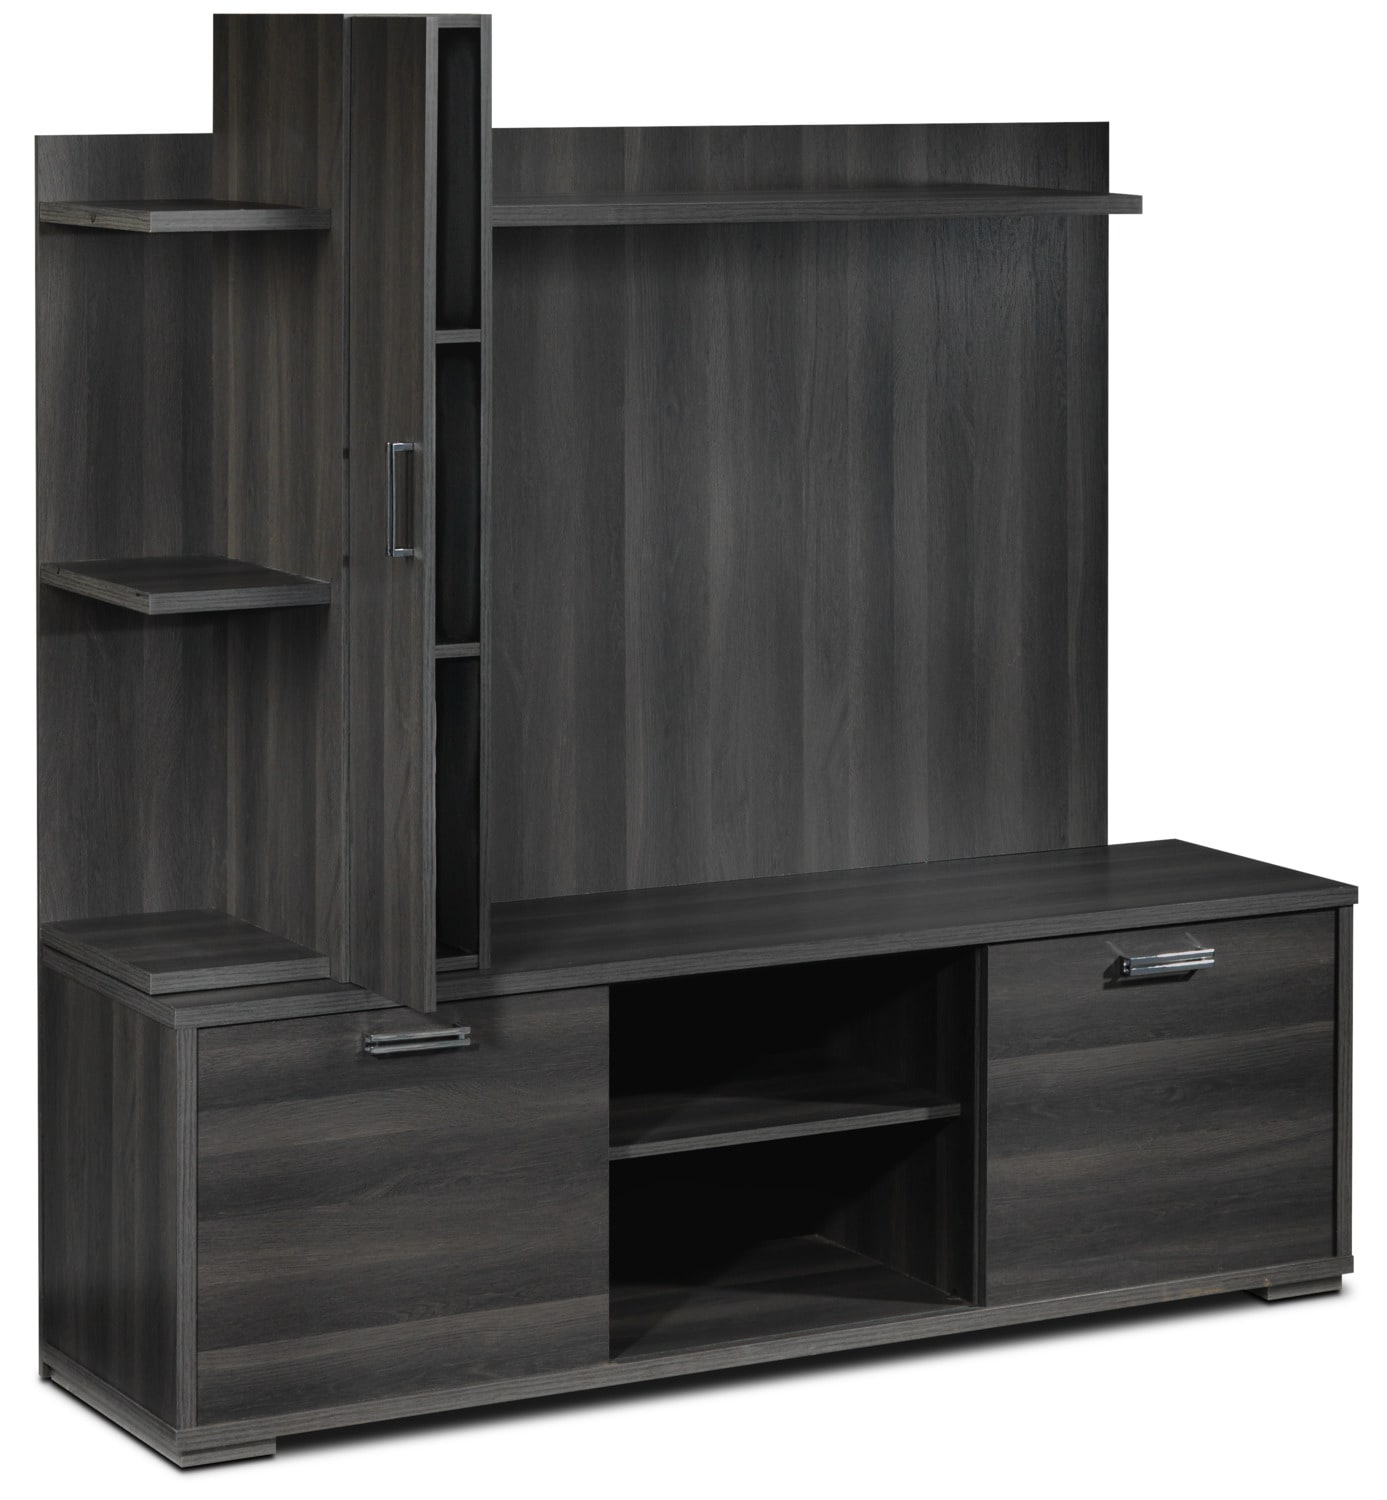 Maris 3-Piece Entertainment Wall Unit - Grey